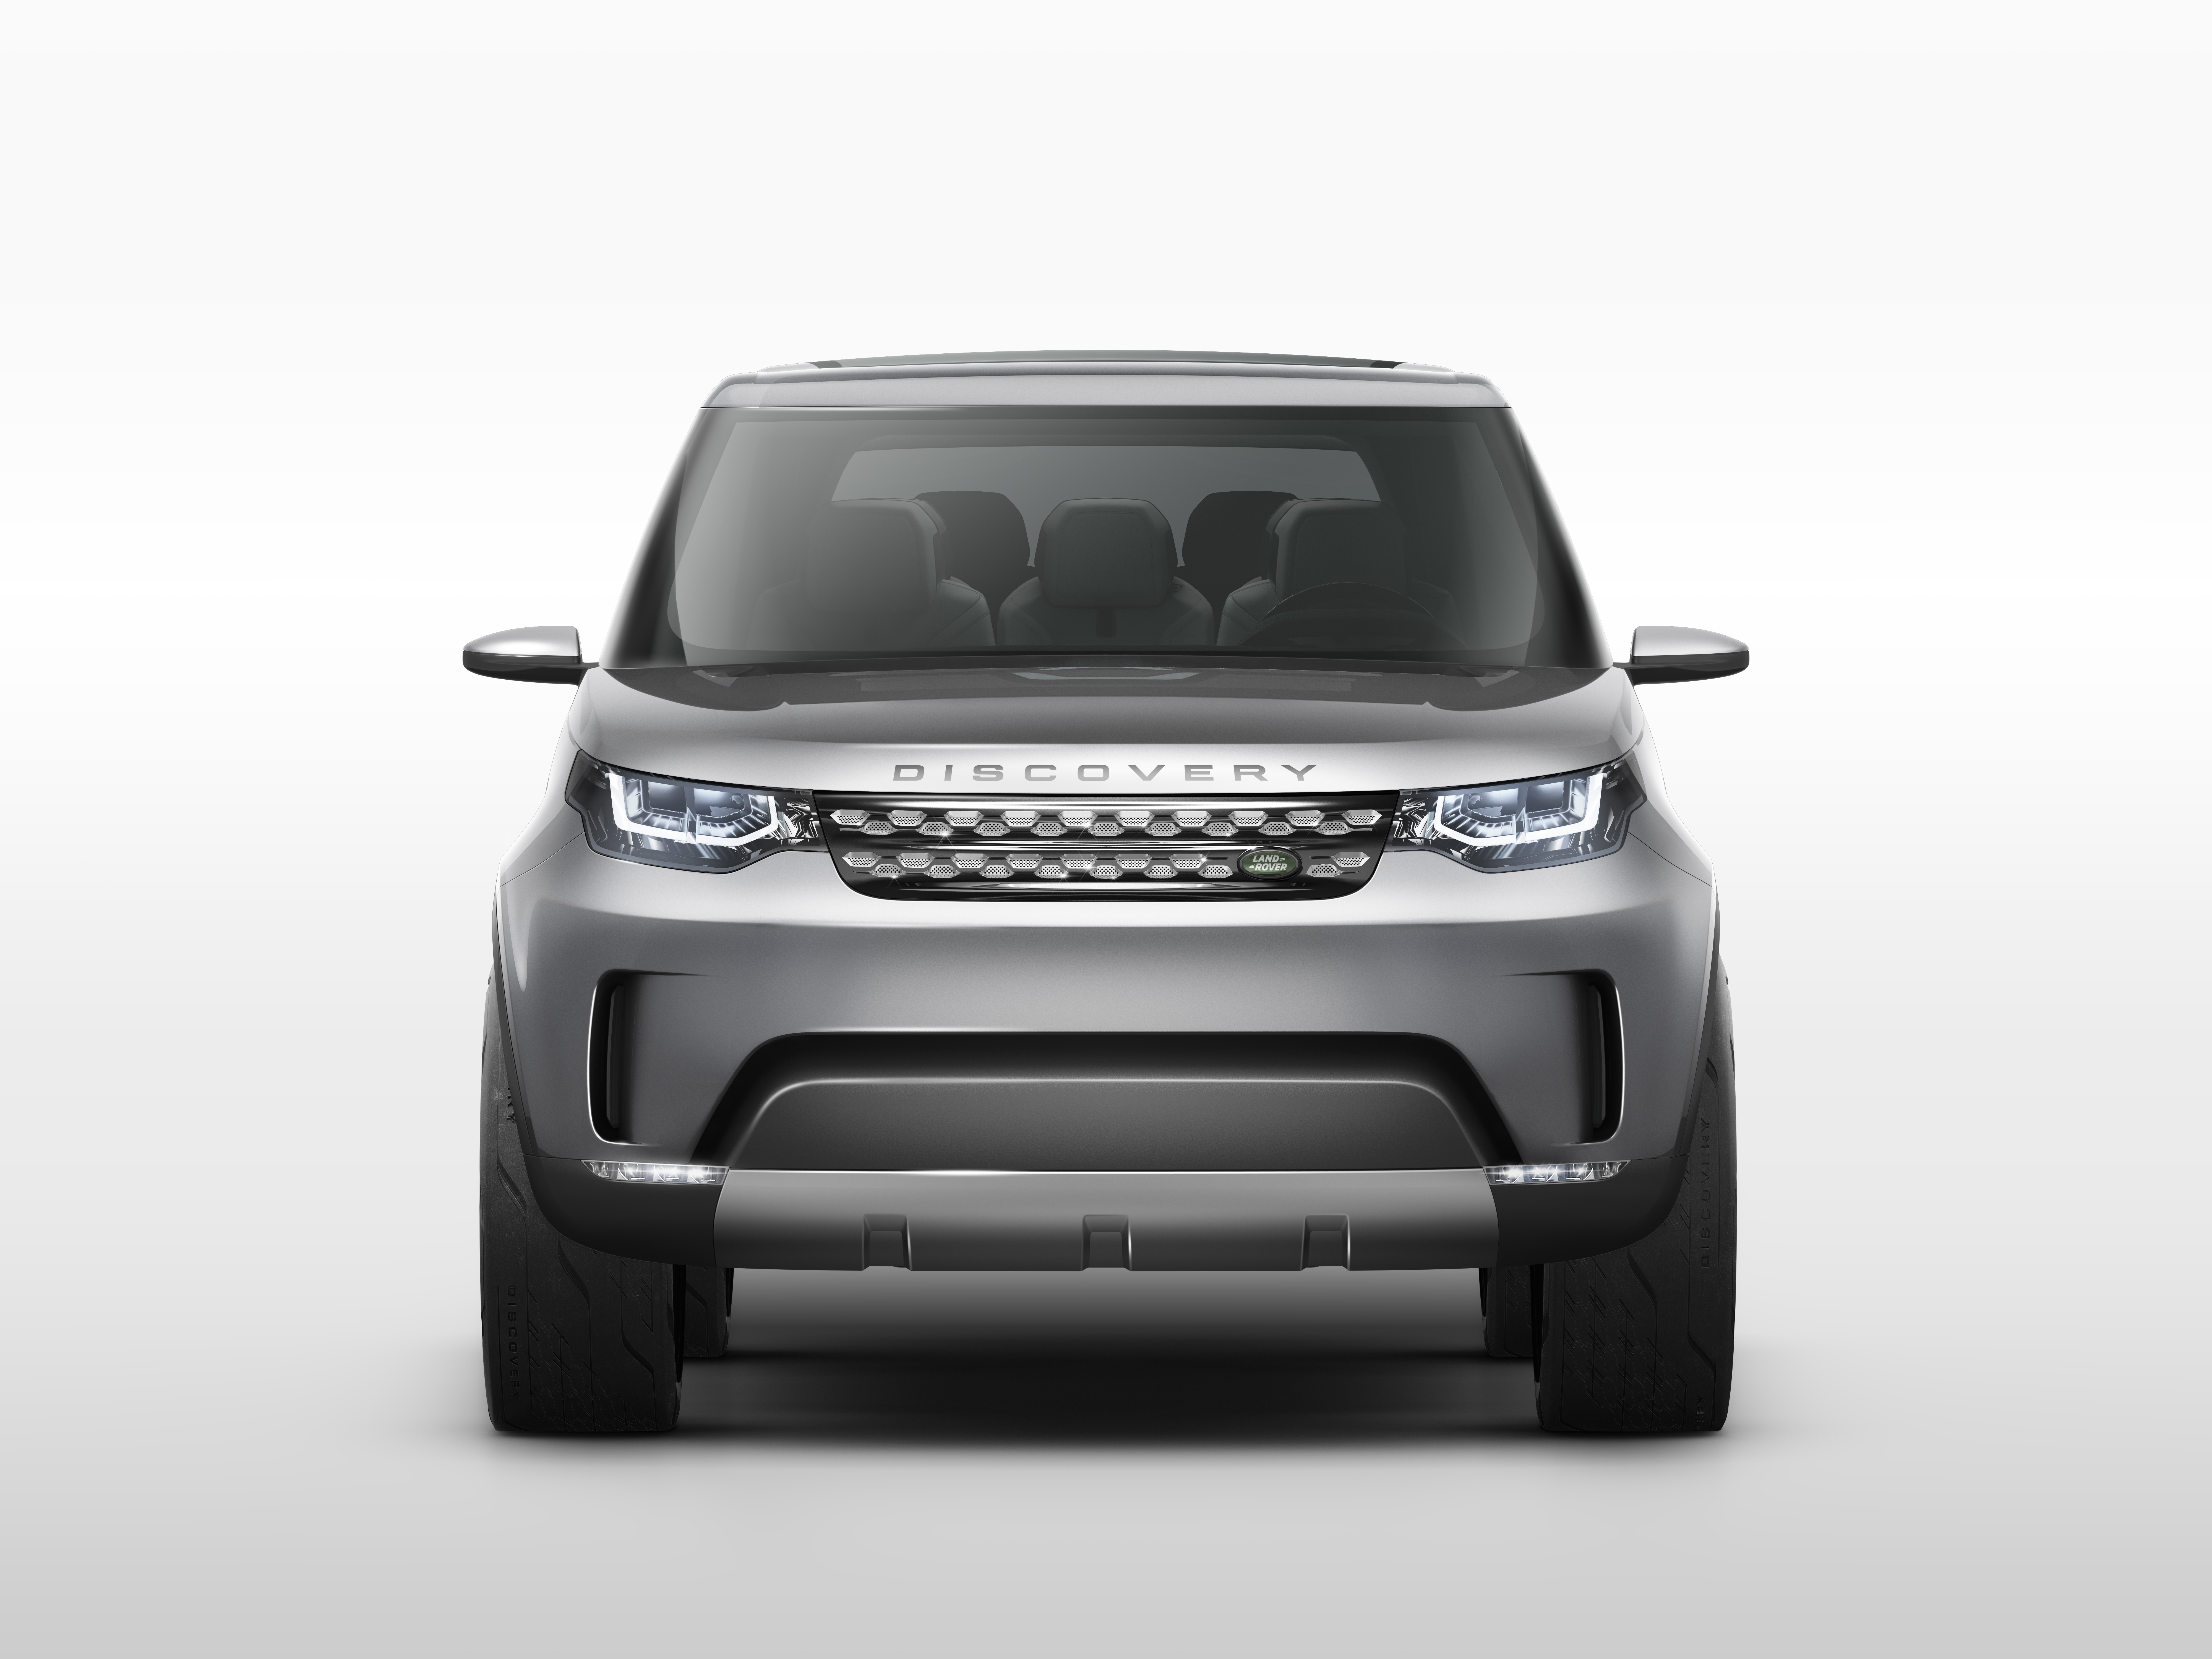 https://upload.wikimedia.org/wikipedia/commons/5/58/Land_Rover_Discovery_Vision_Concept_%2813861198684%29.jpg